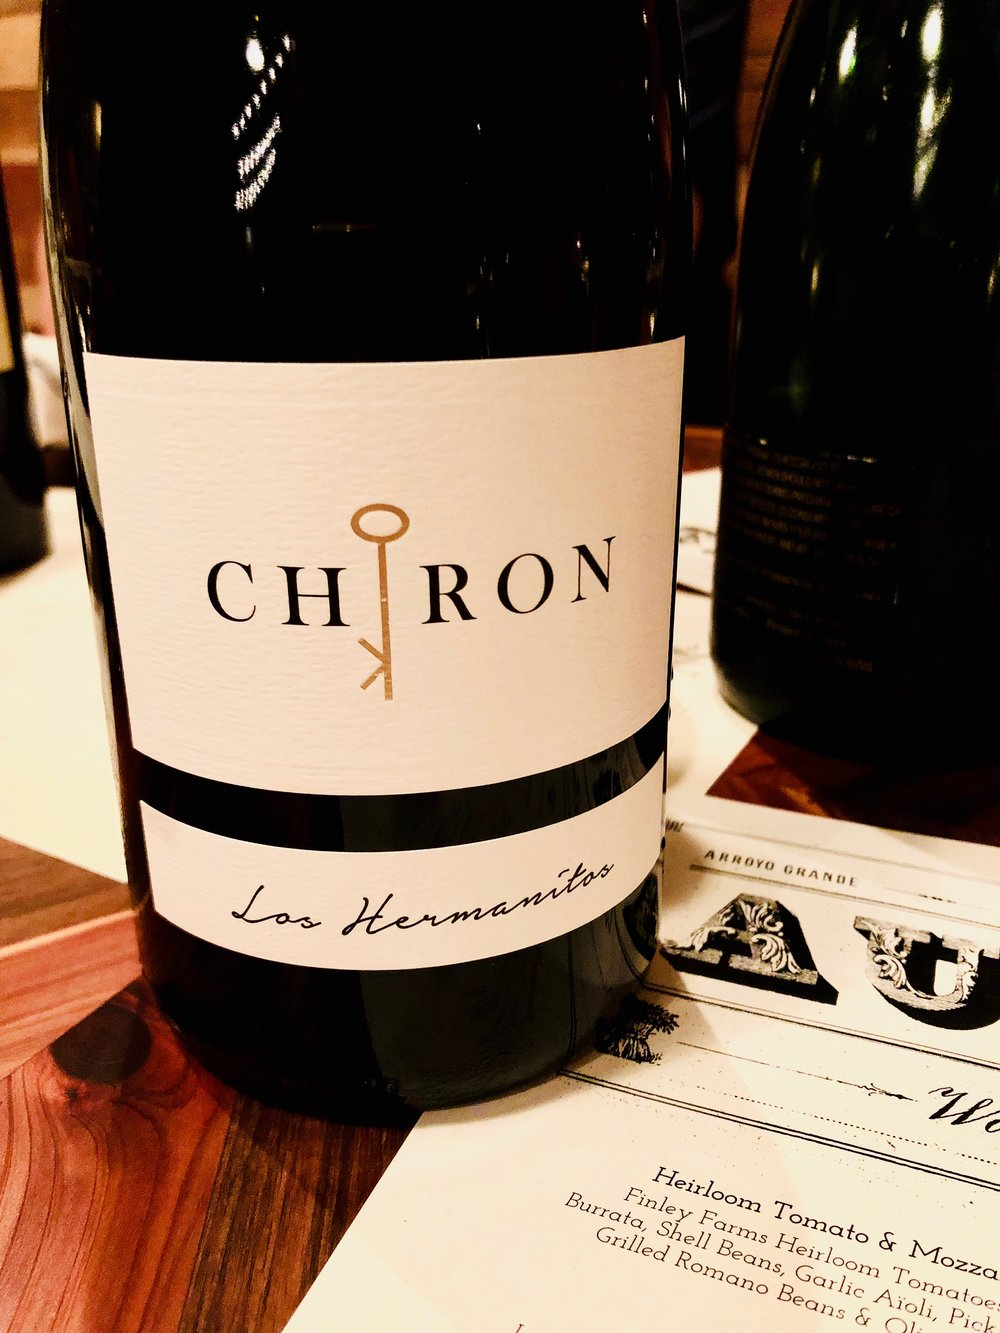 2016 Los Hermanitos by Chiron Wines